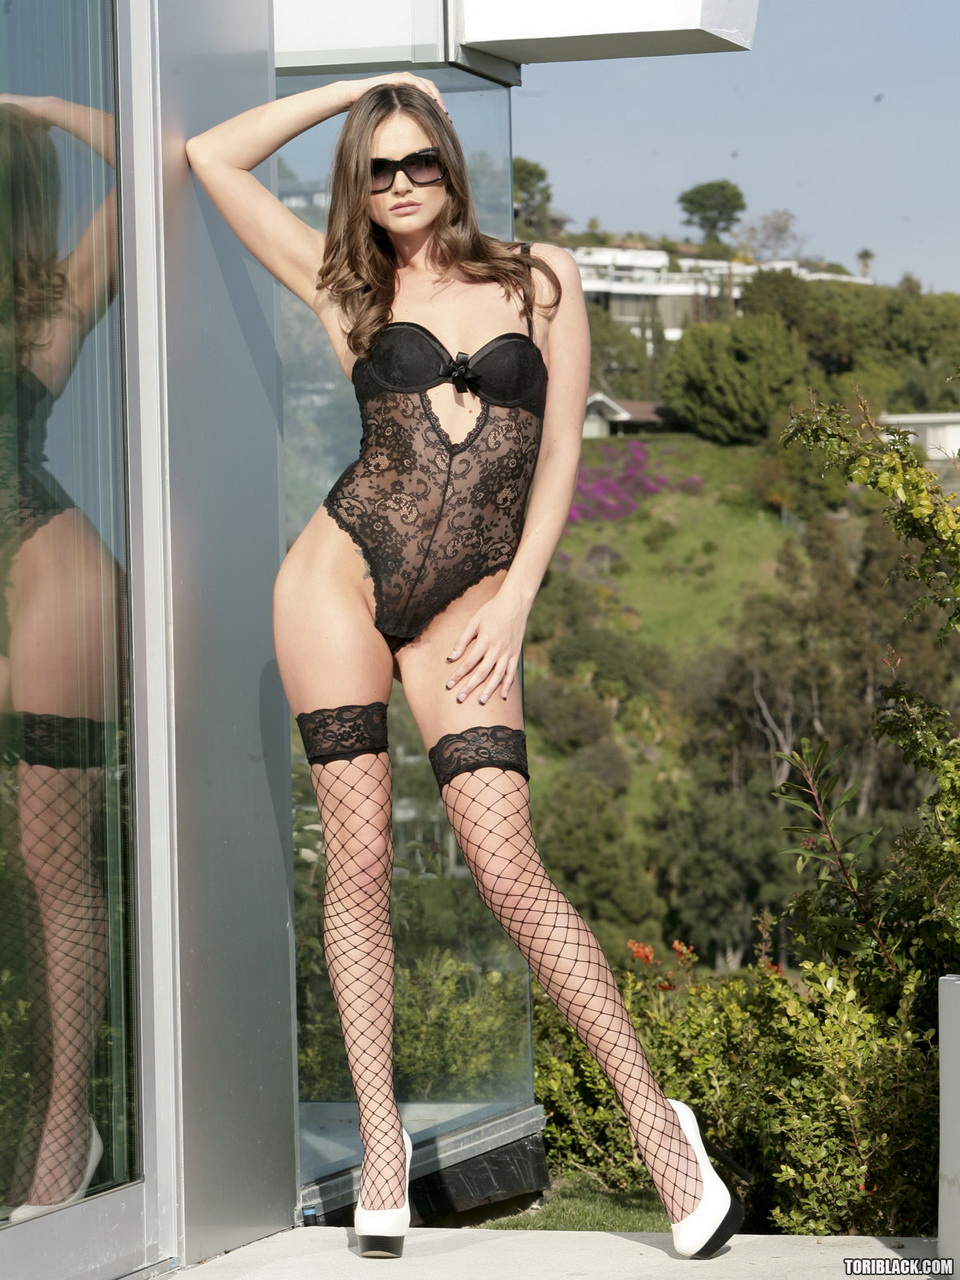 tori-black-with-plump-pussy-wearing-black-lingerie-1.jpg